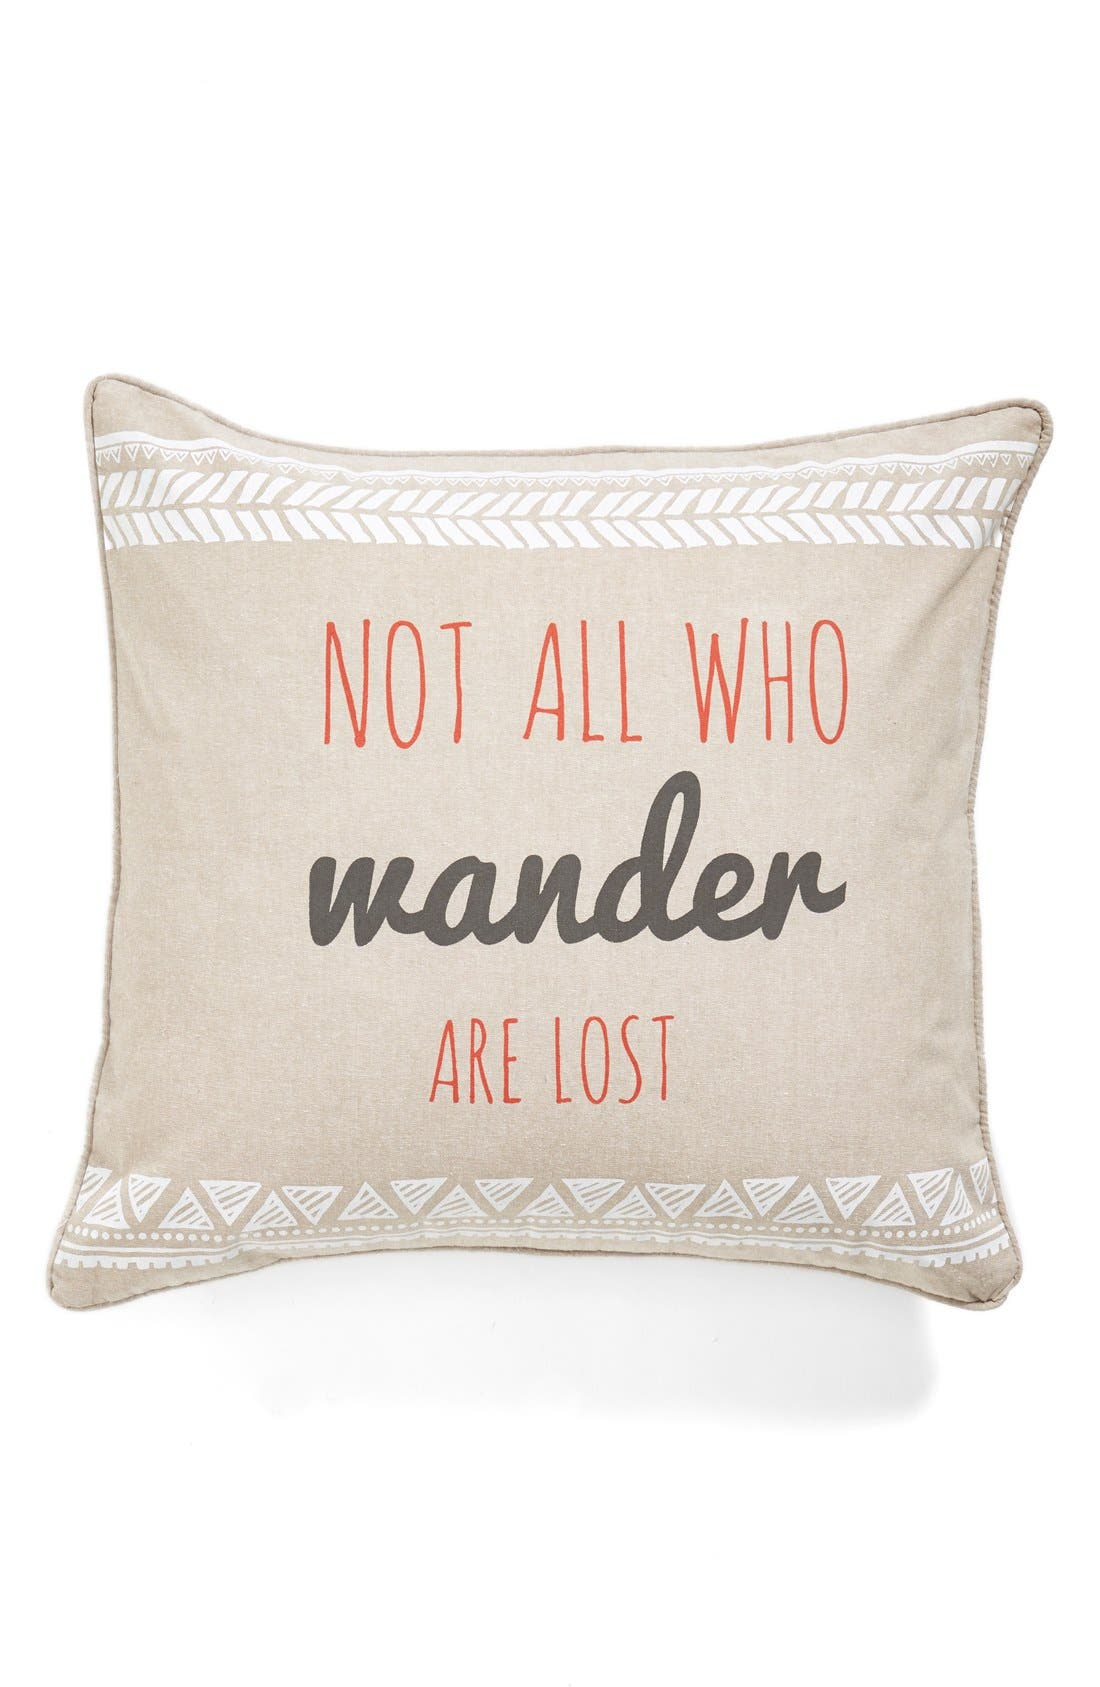 Main Image - Levtex 'Not All Who Wander Are Lost' Decorative Pillow